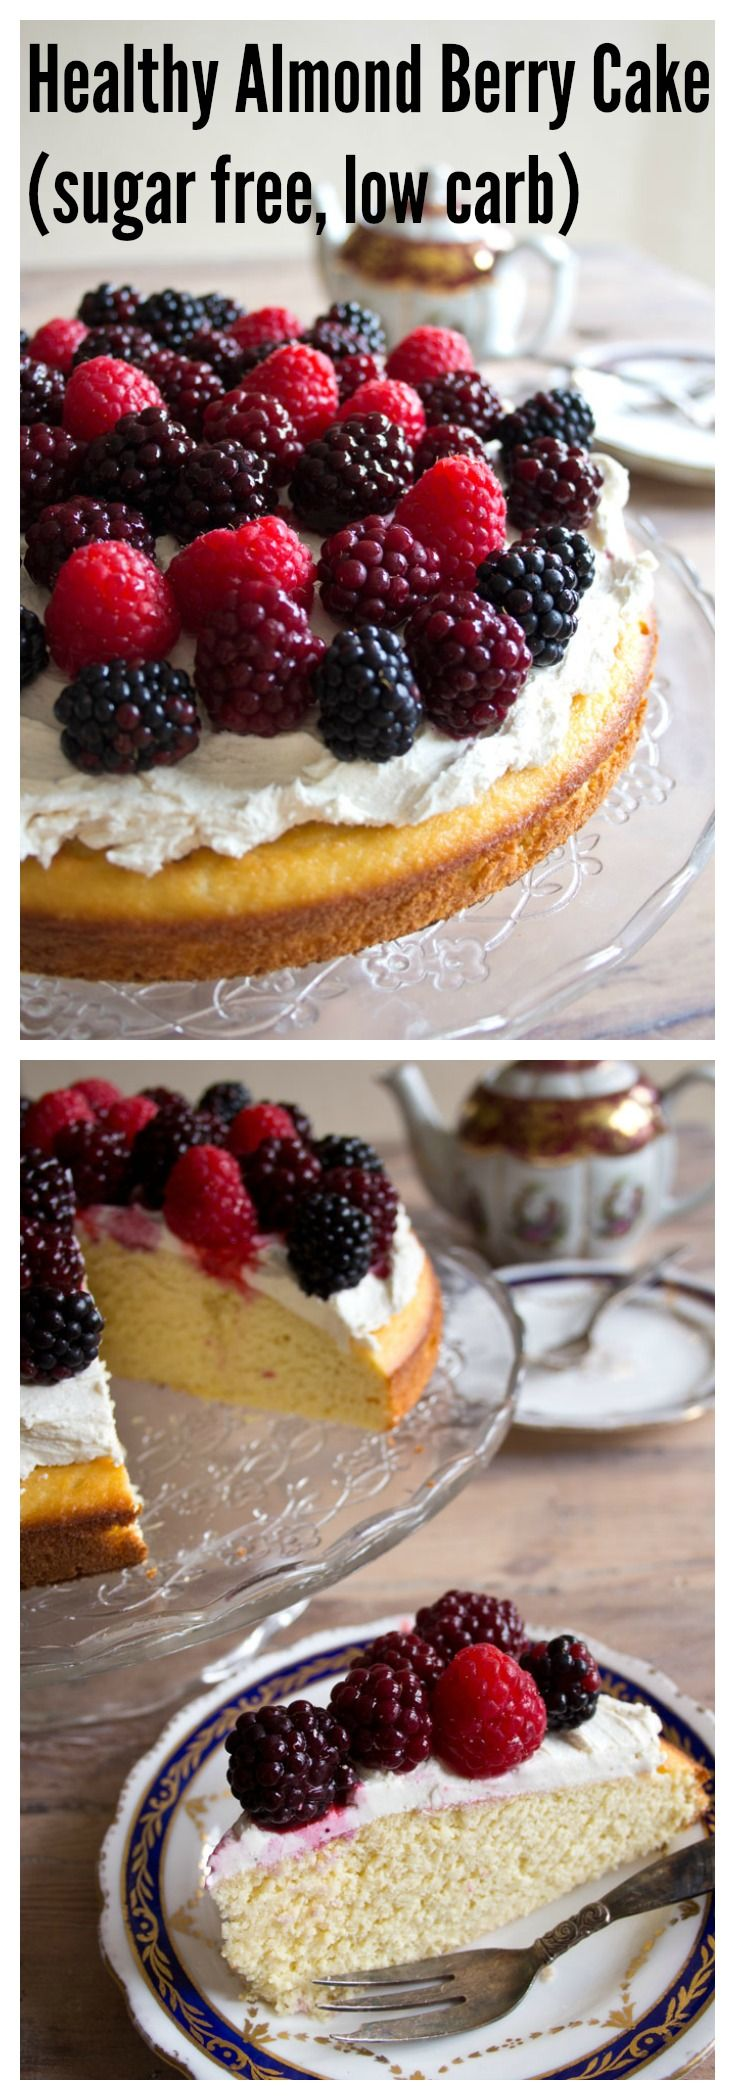 All Food and Drink: Healthy Almond Berry Cake – Sugar Free Londoner